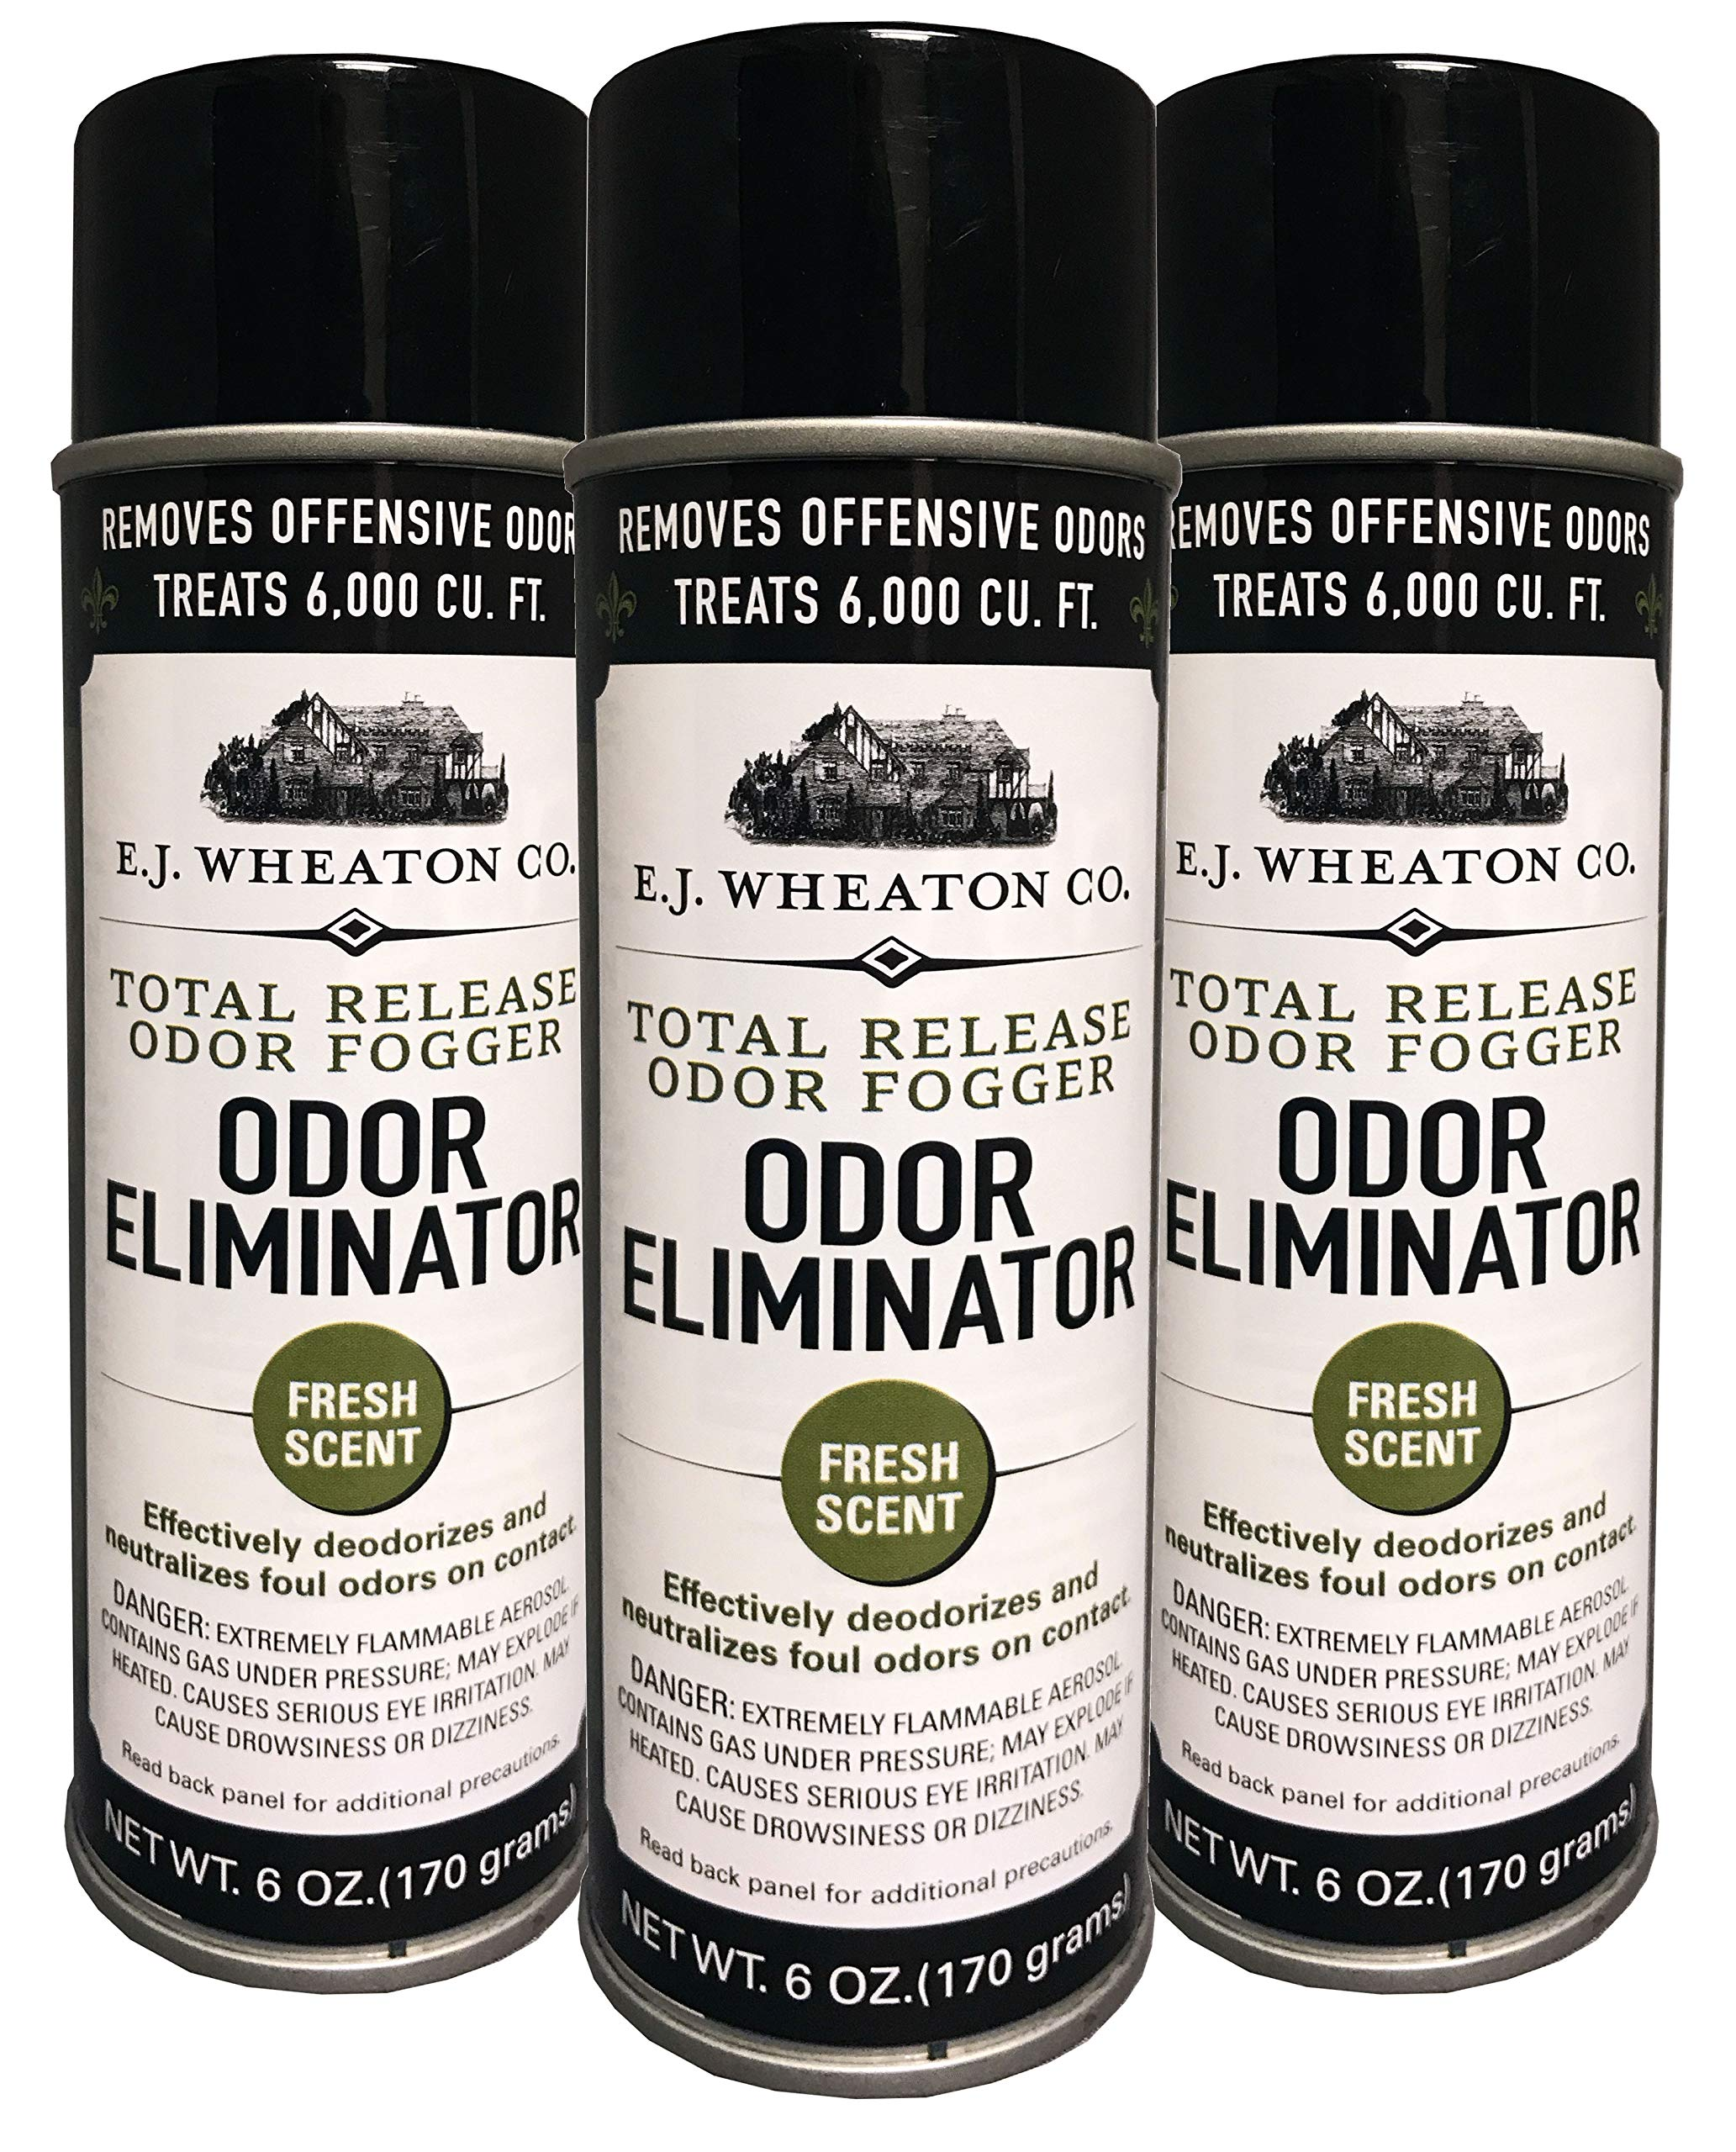 E.J. Wheaton Co. Odor Eliminator, Total Release Odor Fogger, 3 Pack, Effectively Deodorizes and Neutralizes Foul Odors on Contact, Fresh Scent (6 OZ) by E.J. WHEATON CO.